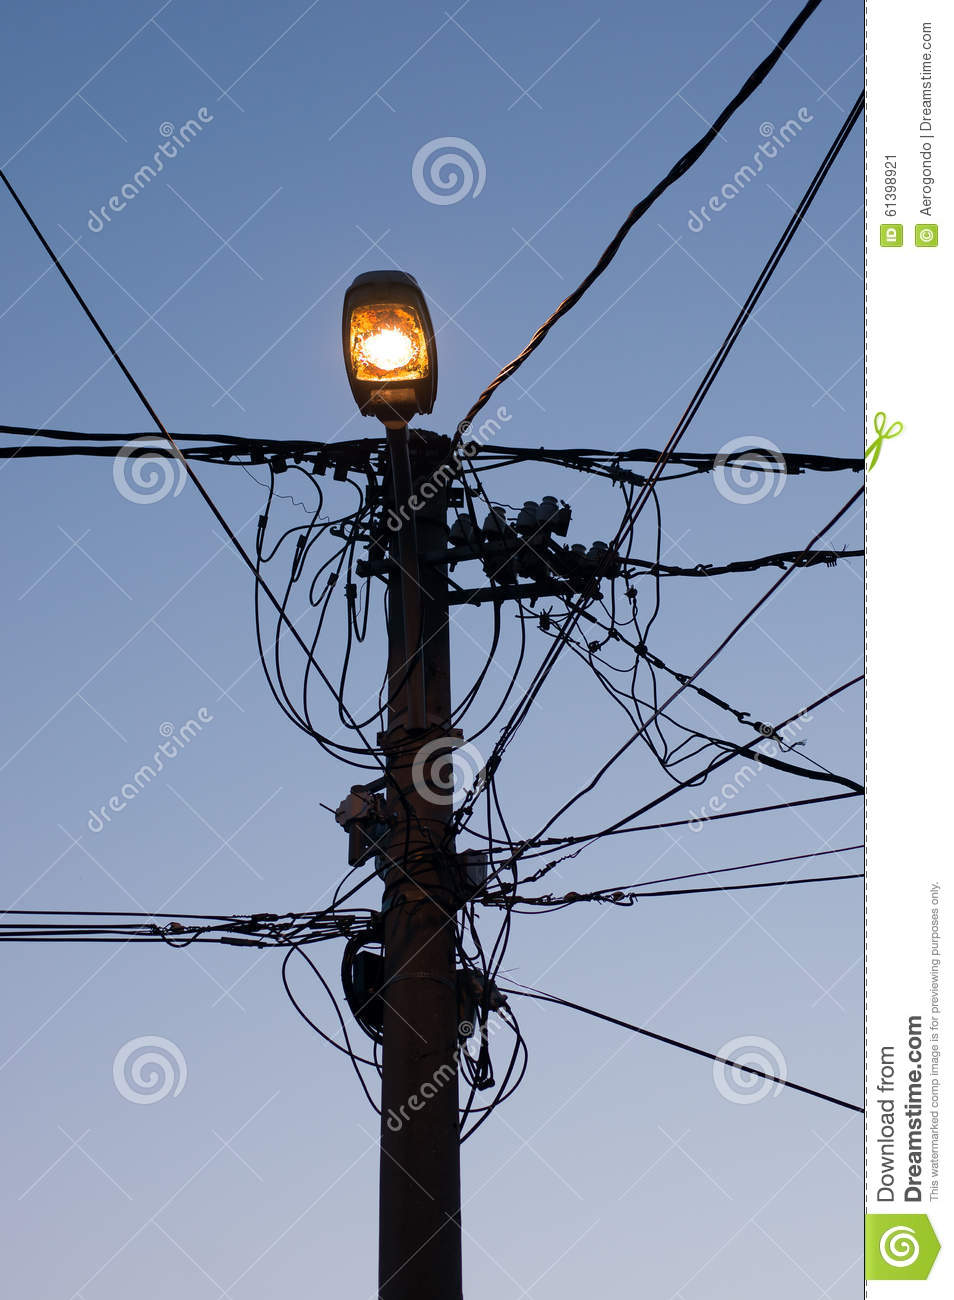 Street lamp and wires stock image. Image of silhouette - 61398921